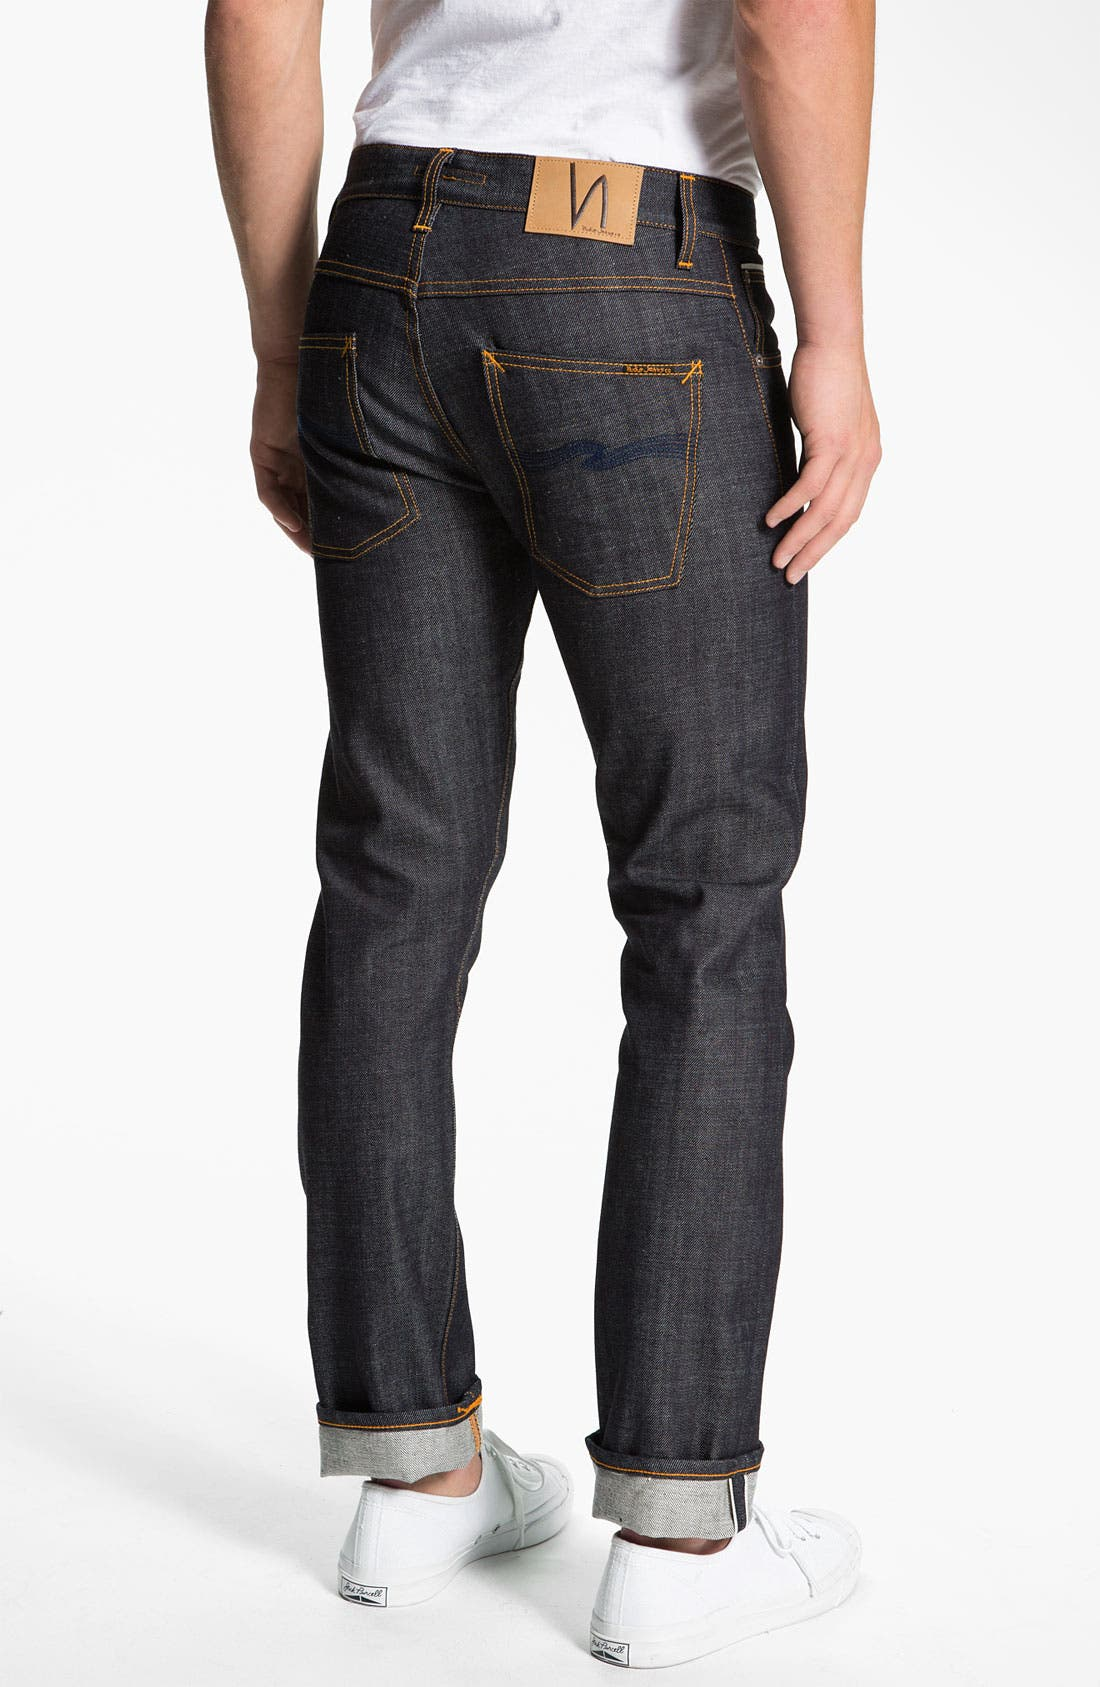 Alternate Image 1 Selected - Nudie 'Grim Tim' Skinny Straight Leg Jeans (Open Dry Selvage)